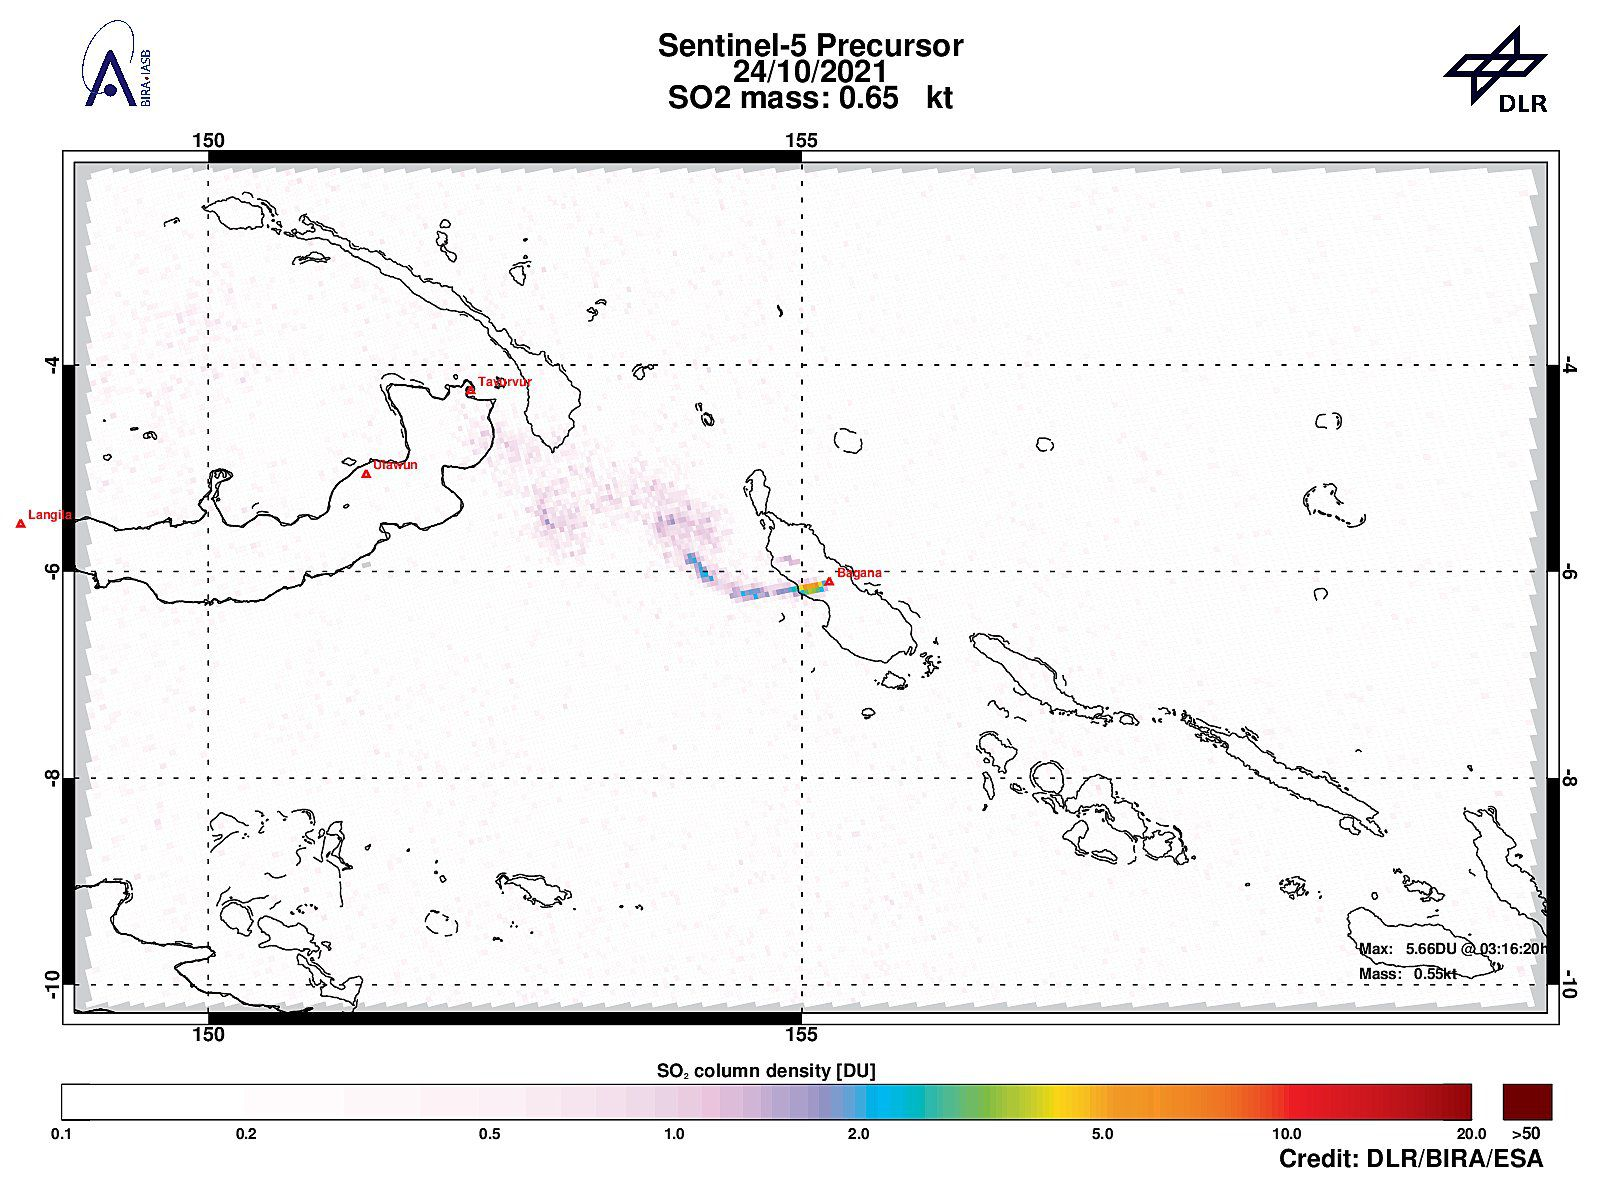 Bagana - improved SO2 signal in the vicinity of Bagana with 5.66DU of SO2 on 24.10.2021 - Sentinel-5P tropomi